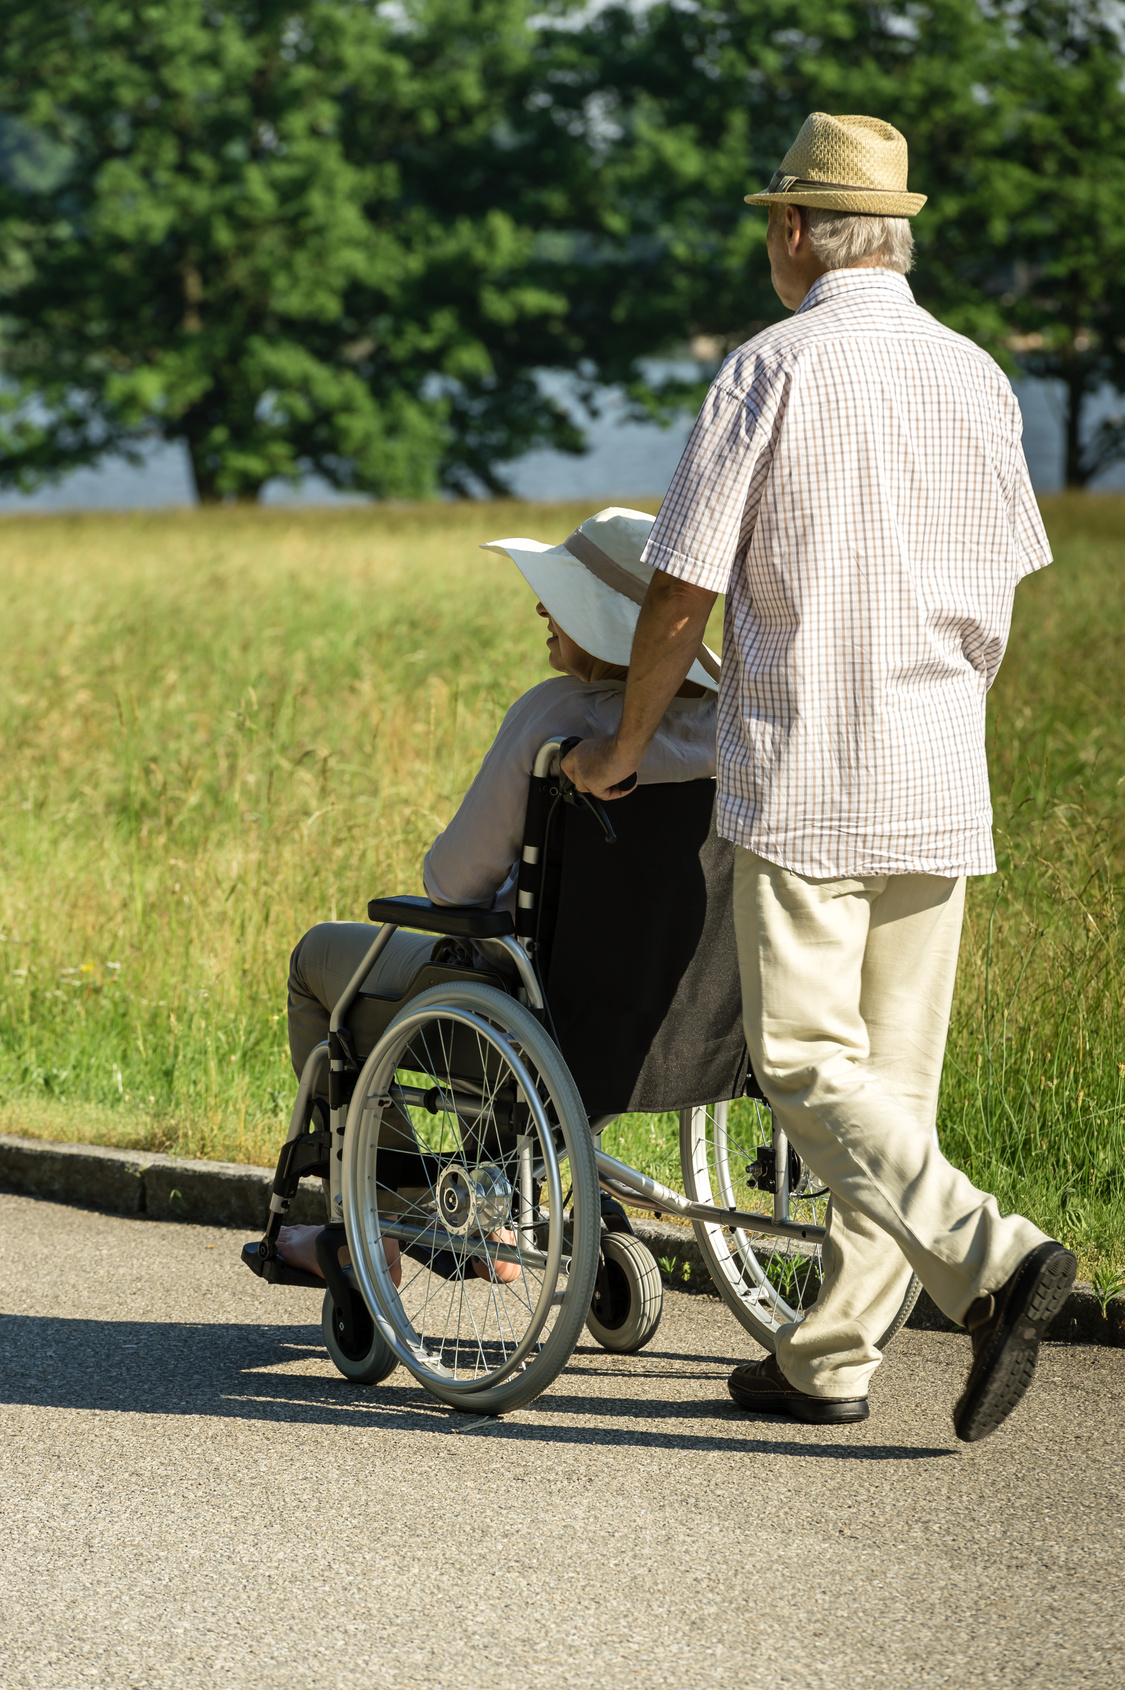 Senior husband pushing wife's wheelchair in park